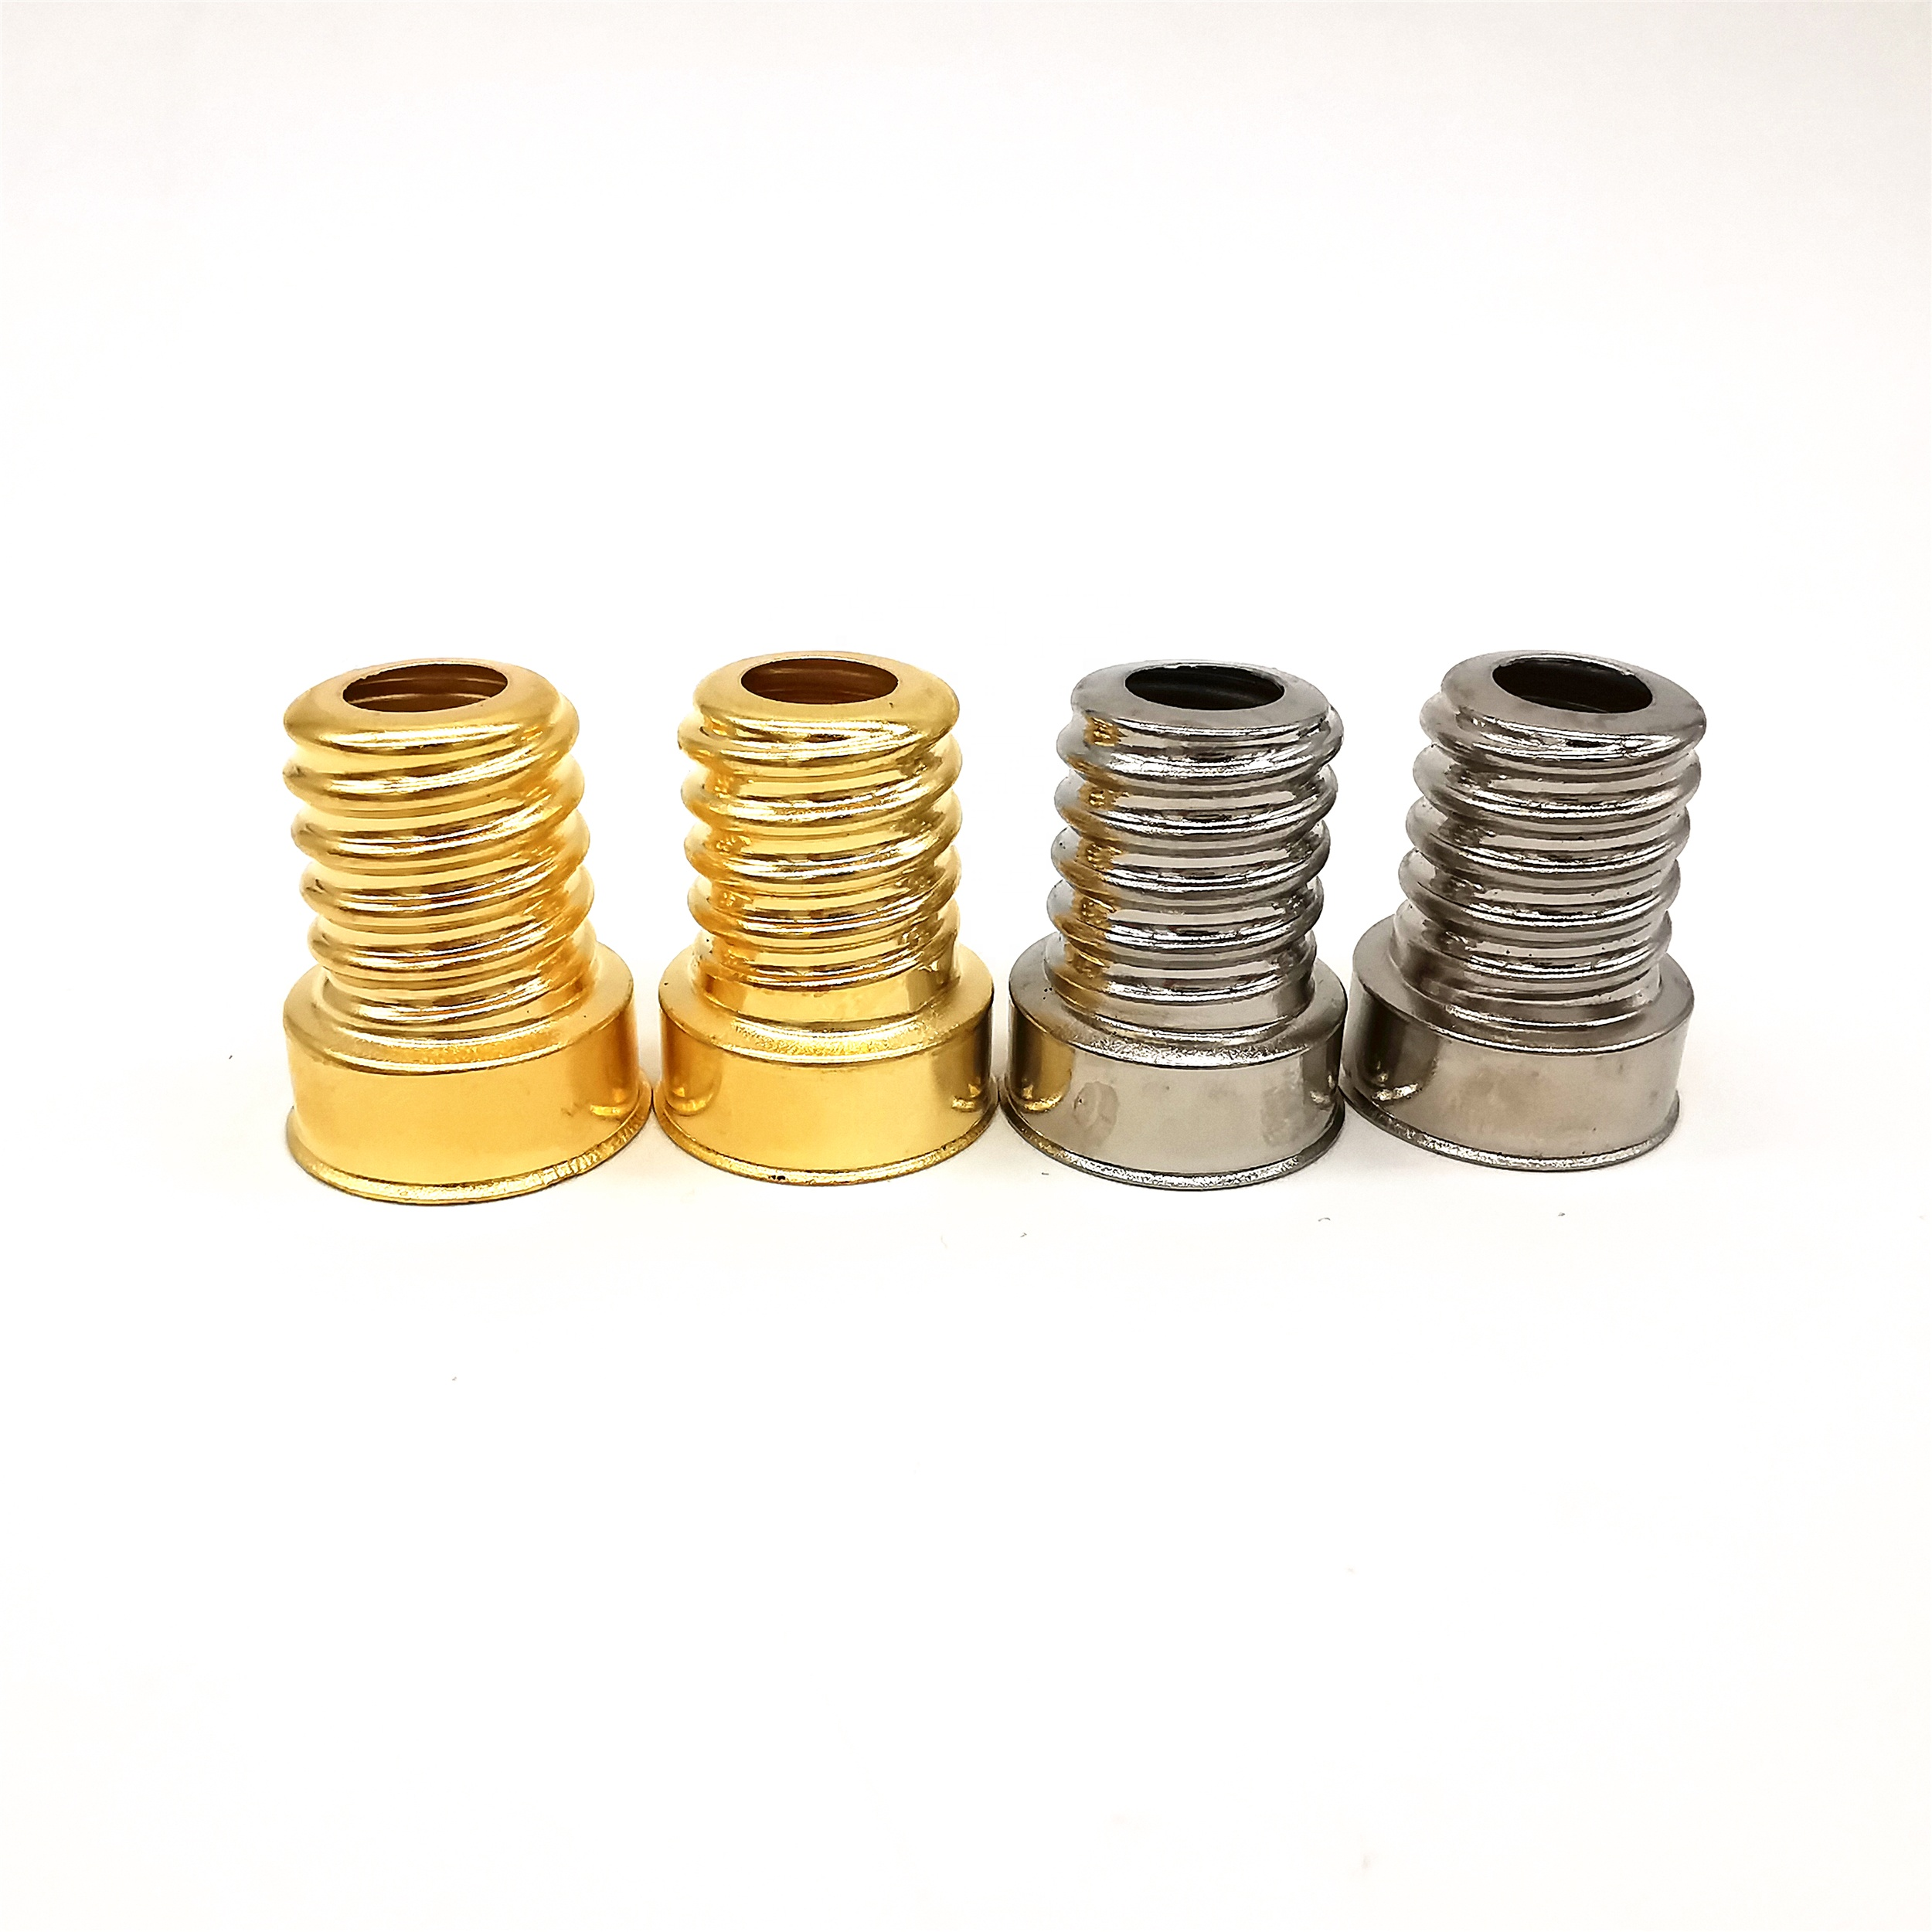 E14/25*17 copper plated nickel lamp base cap holder lamp cover E14/25 brass with nickel E14 lamp cap